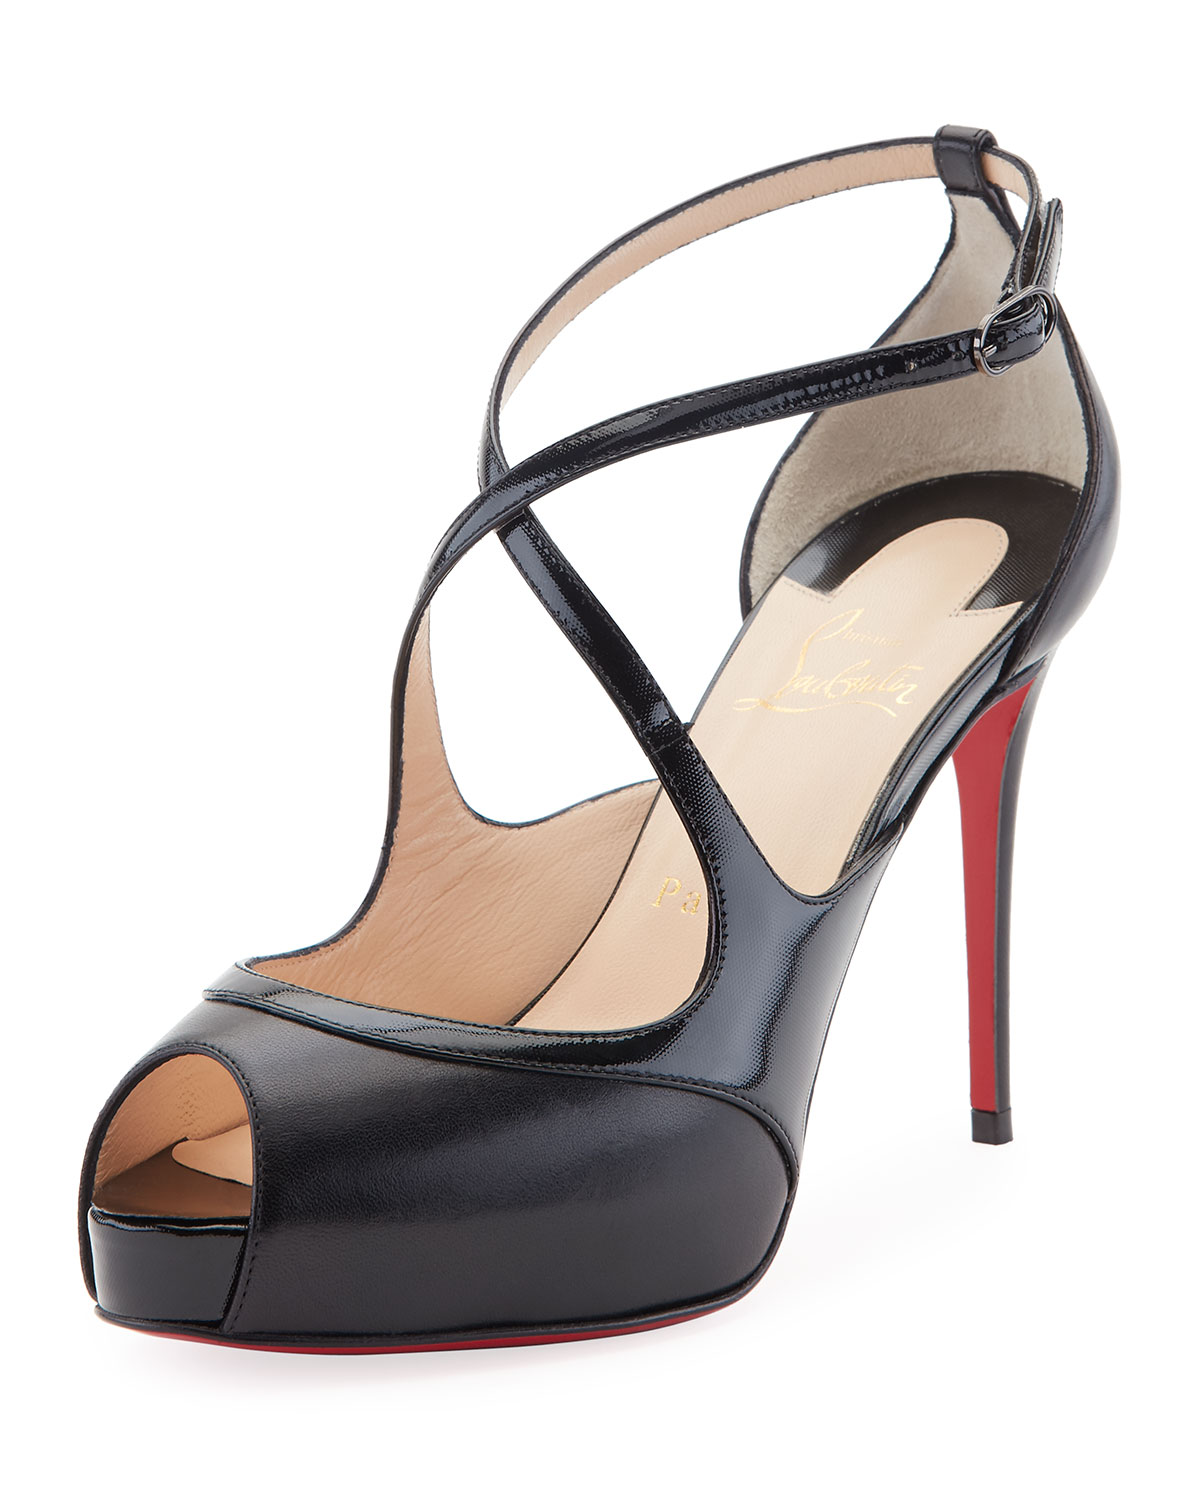 Christian Louboutin Mira Bella Leather Red Sole Sandal fdbe31009